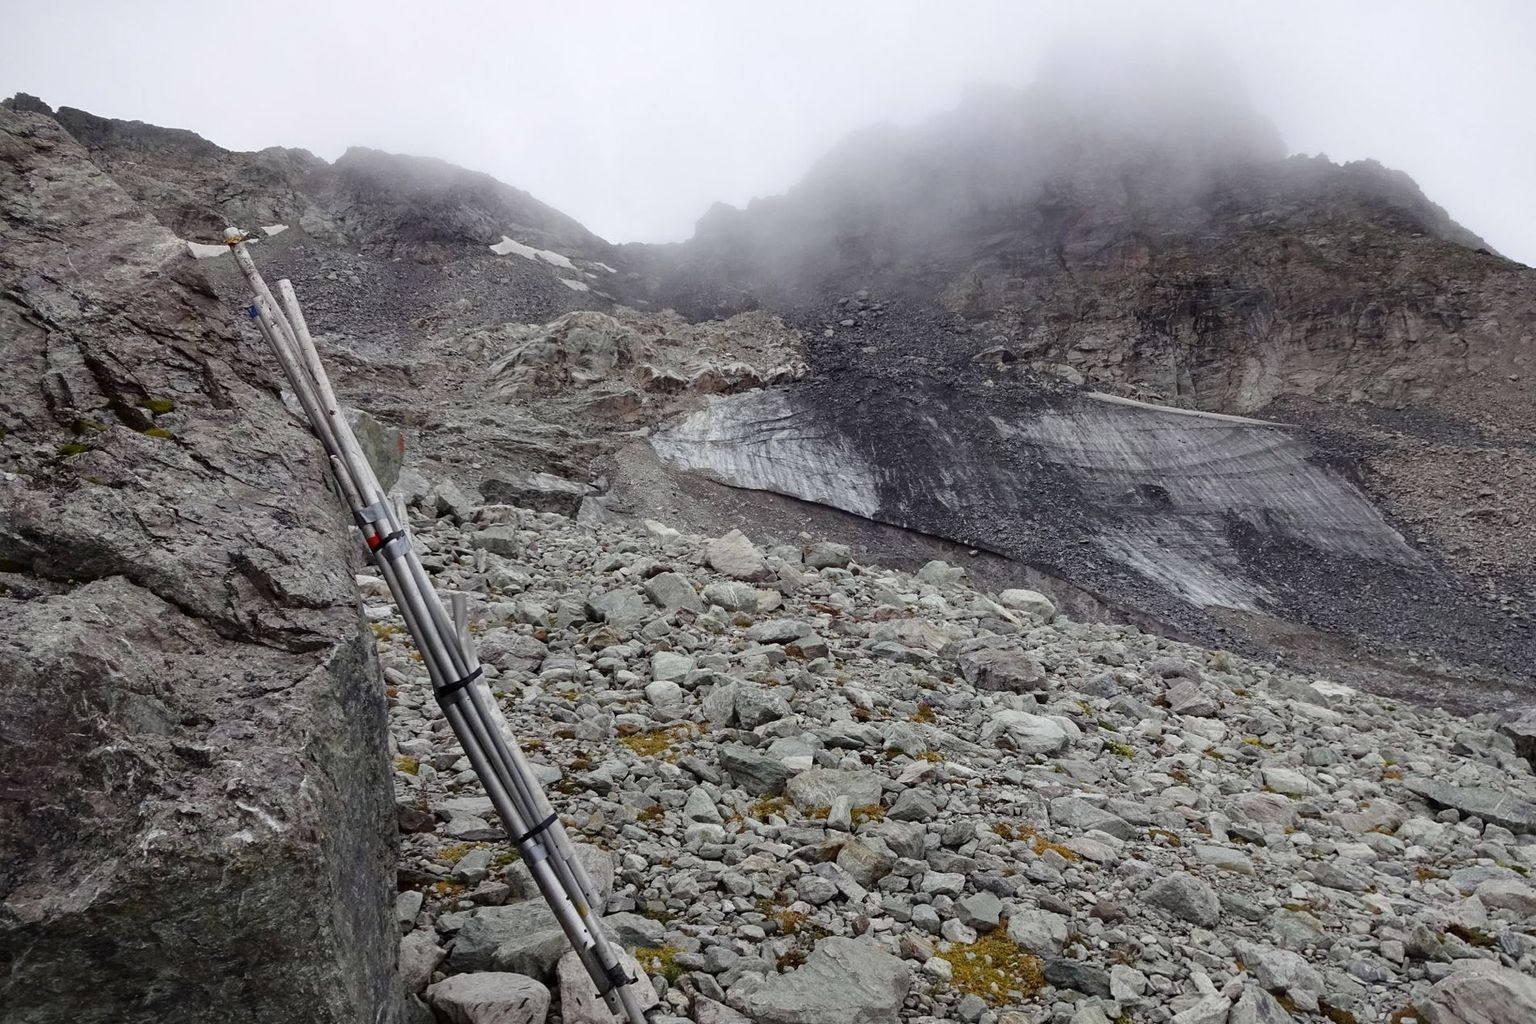 After the end of the series of measurements on the Pizol Glacier (SG) was heralded by a memorial service last autumn, this year the measurement material had to be cleared away from the meagre remaining ice.